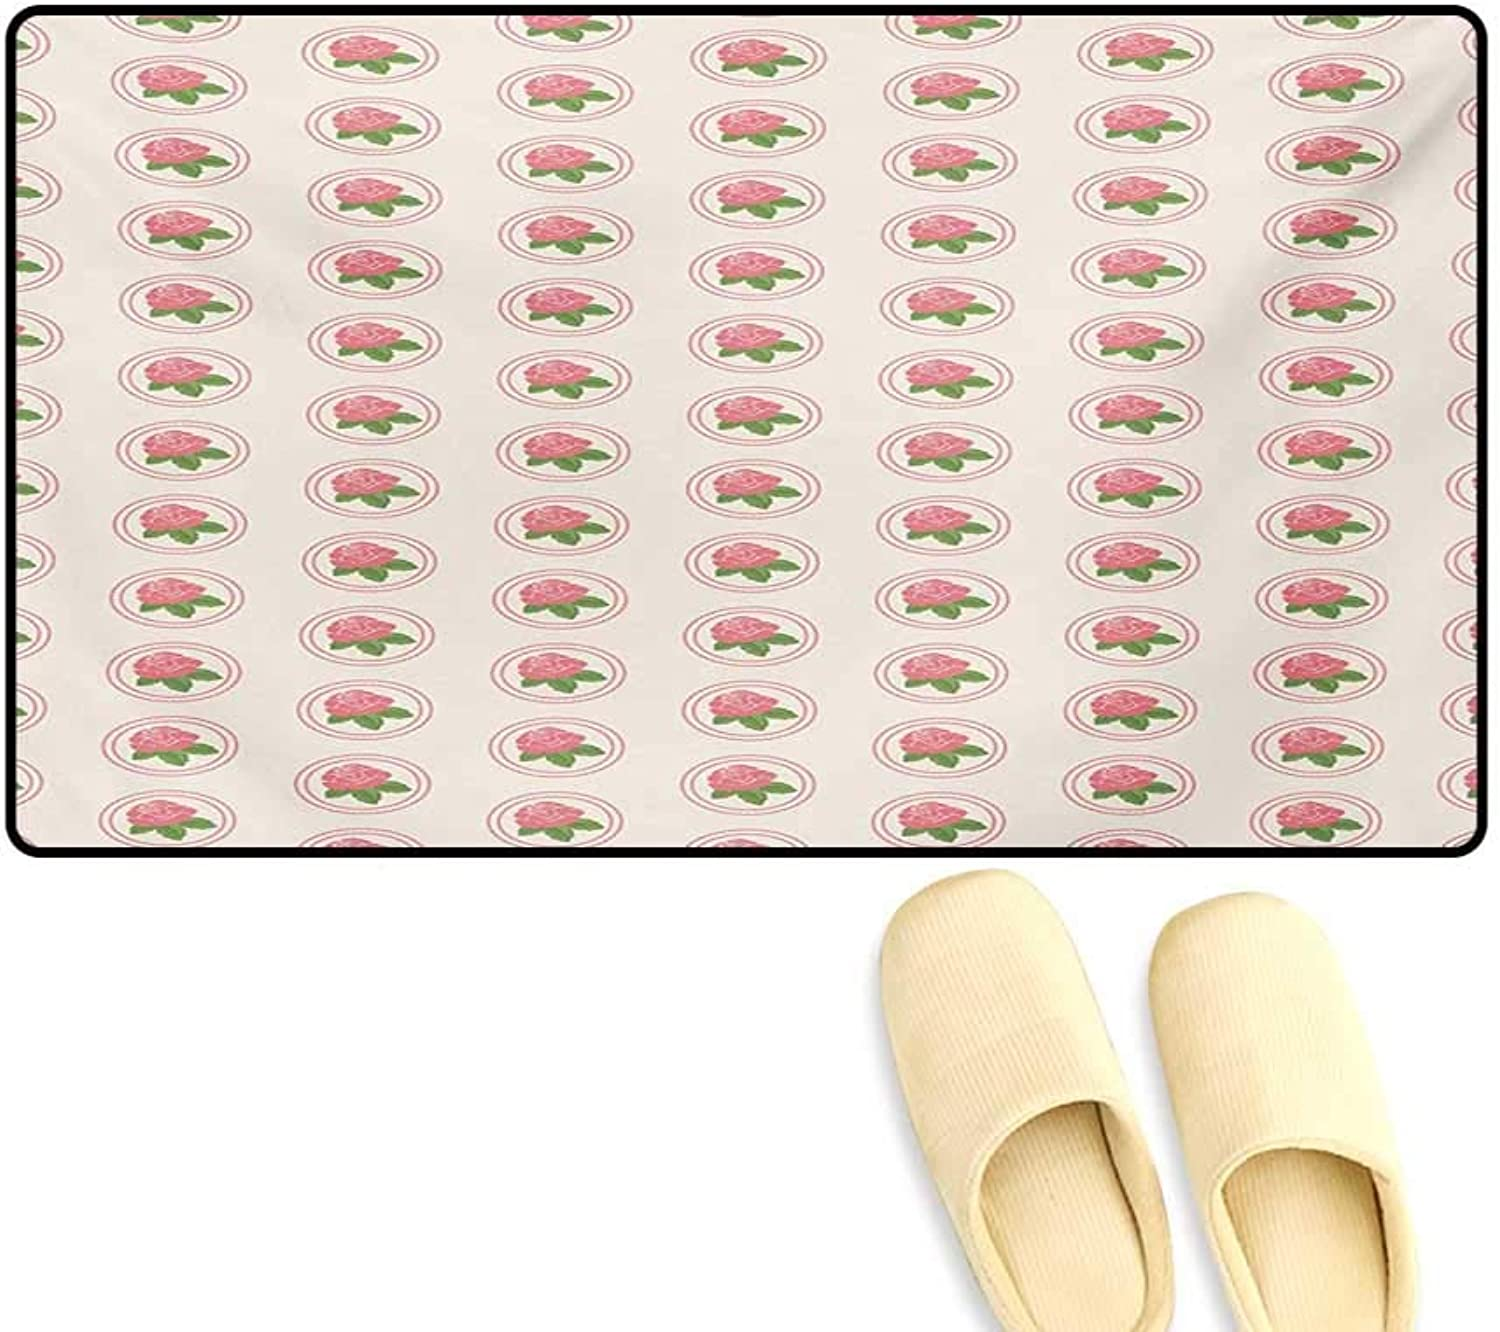 Door-mat,Country Farmhouse Theme pink Blooms Leaves in Frames Image,Door Mats Inside Bathroom Mat Non Slip,Pale Pink White Green,24 x36